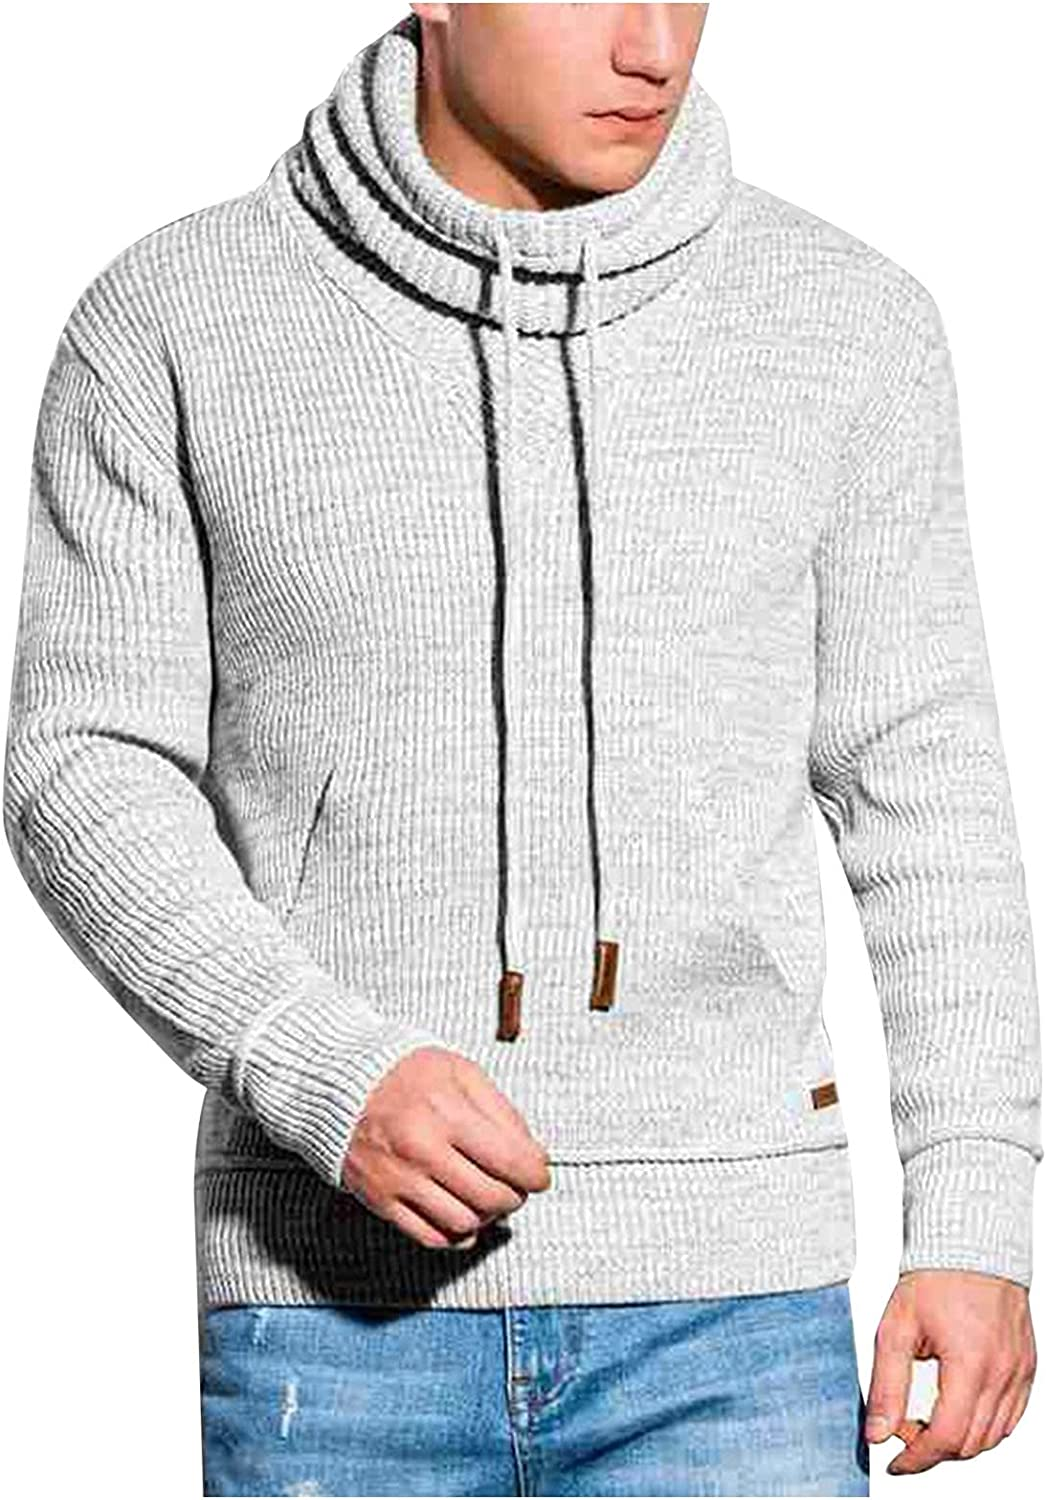 Huangse Men's Knitted Turtleneck Pullover Sweater Slim Fit High Neck Sweaters with Drawstring Long Sleeve Knit Sweatshirt